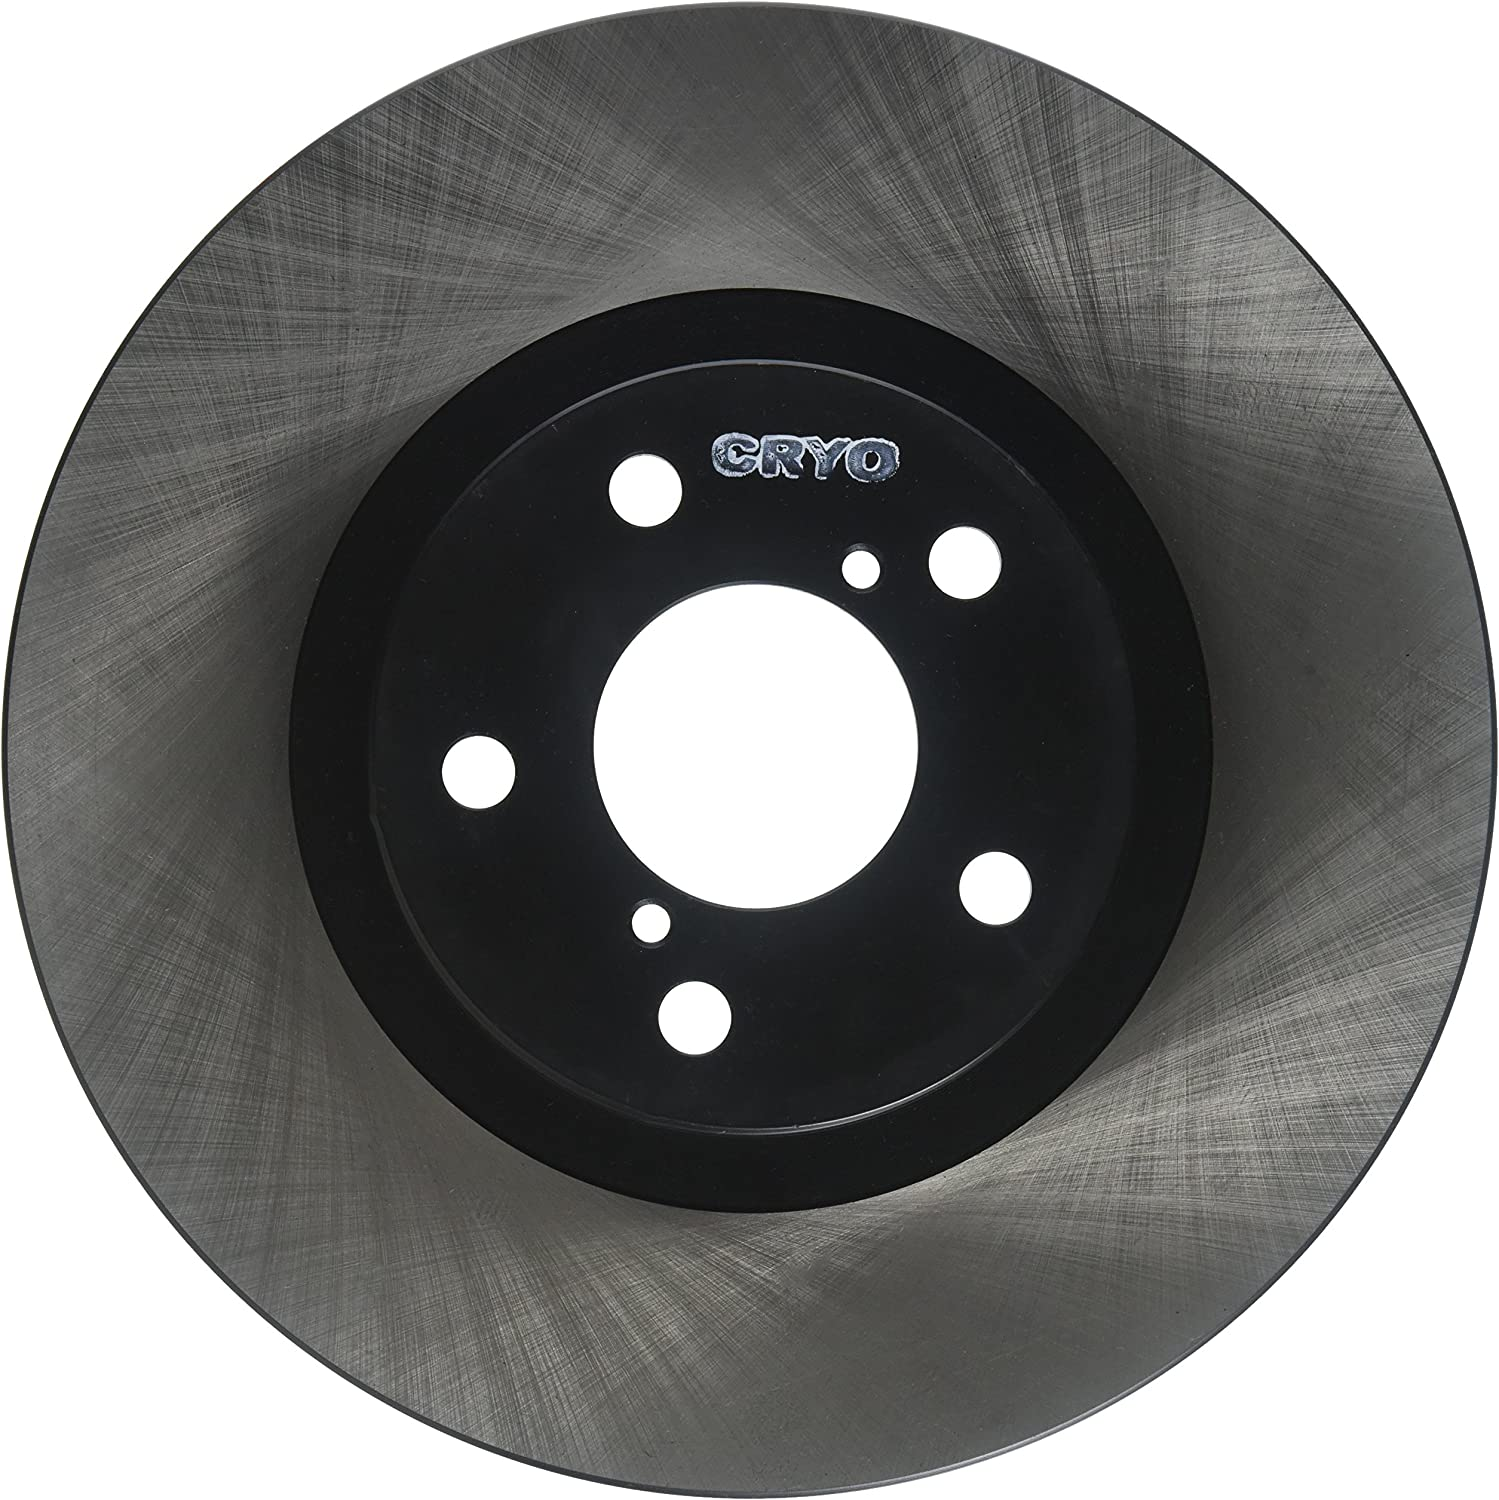 Centric Parts 120.47012 Premium Brake Rotor with E-Coating